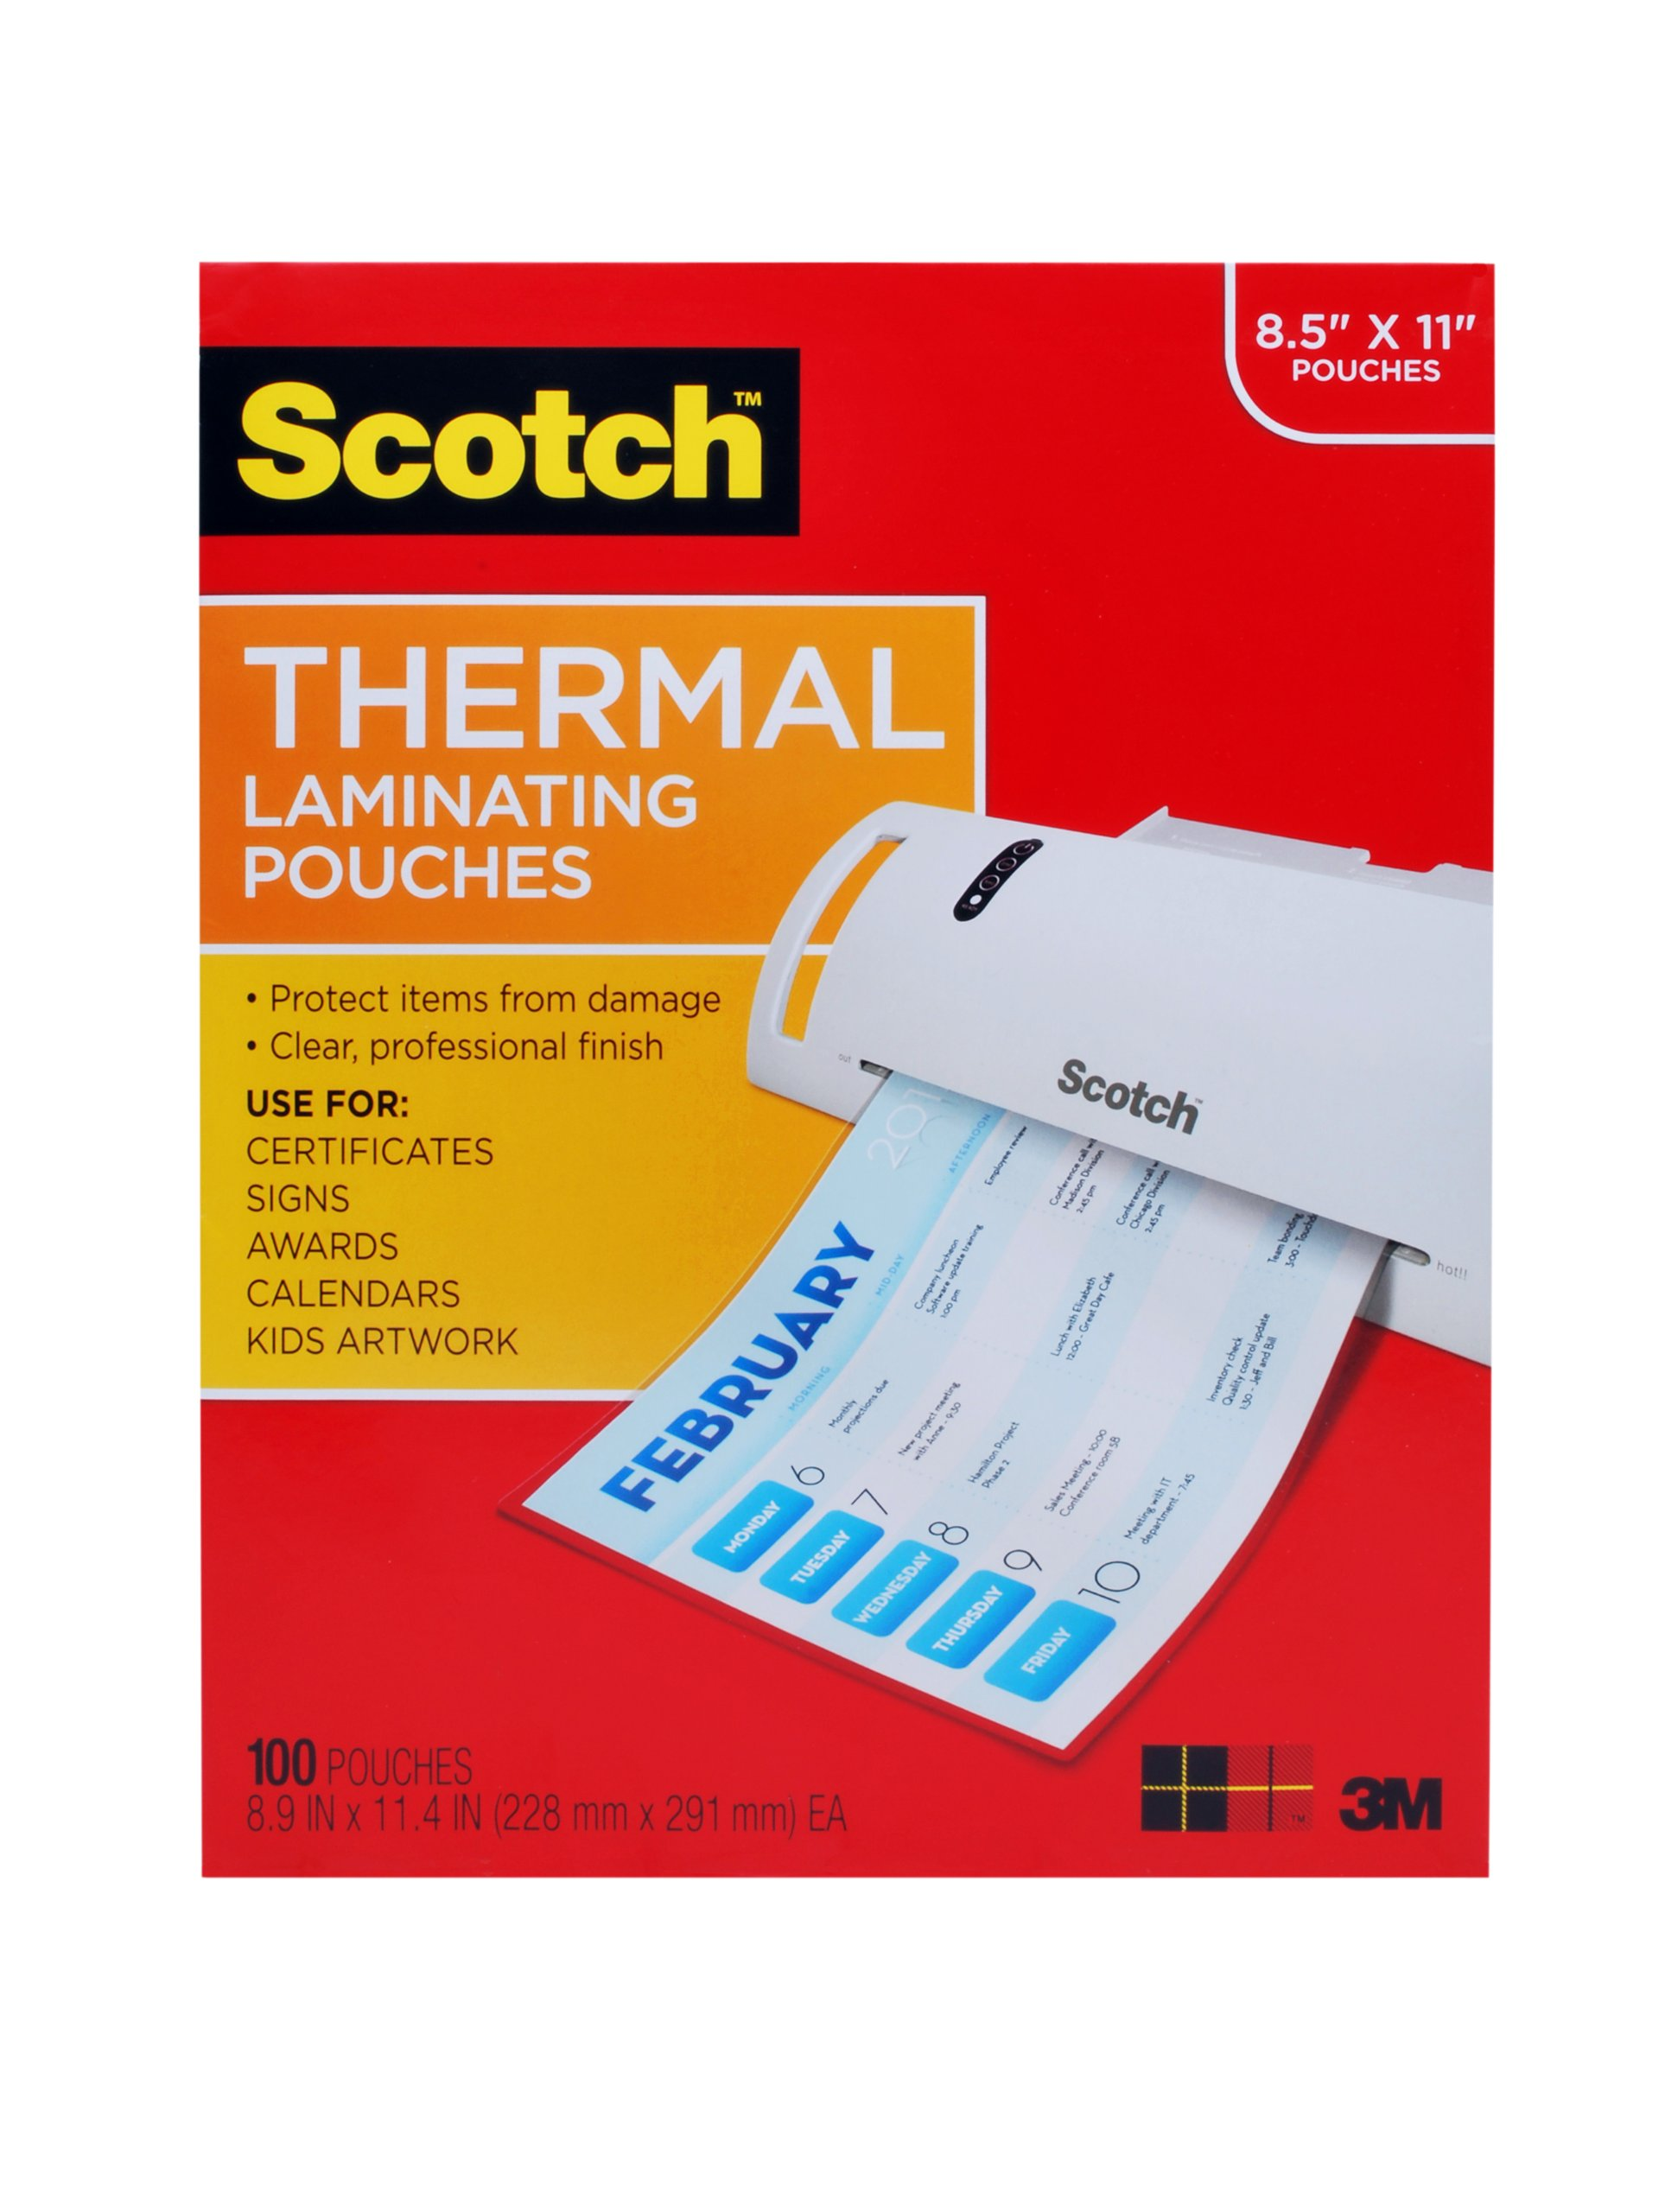 Scotch Thermal Laminating Pouches, 8.9 x 11.4 -Inches, 3 mil thick, 100-Pack (TP3854-100) by Scotch Brand